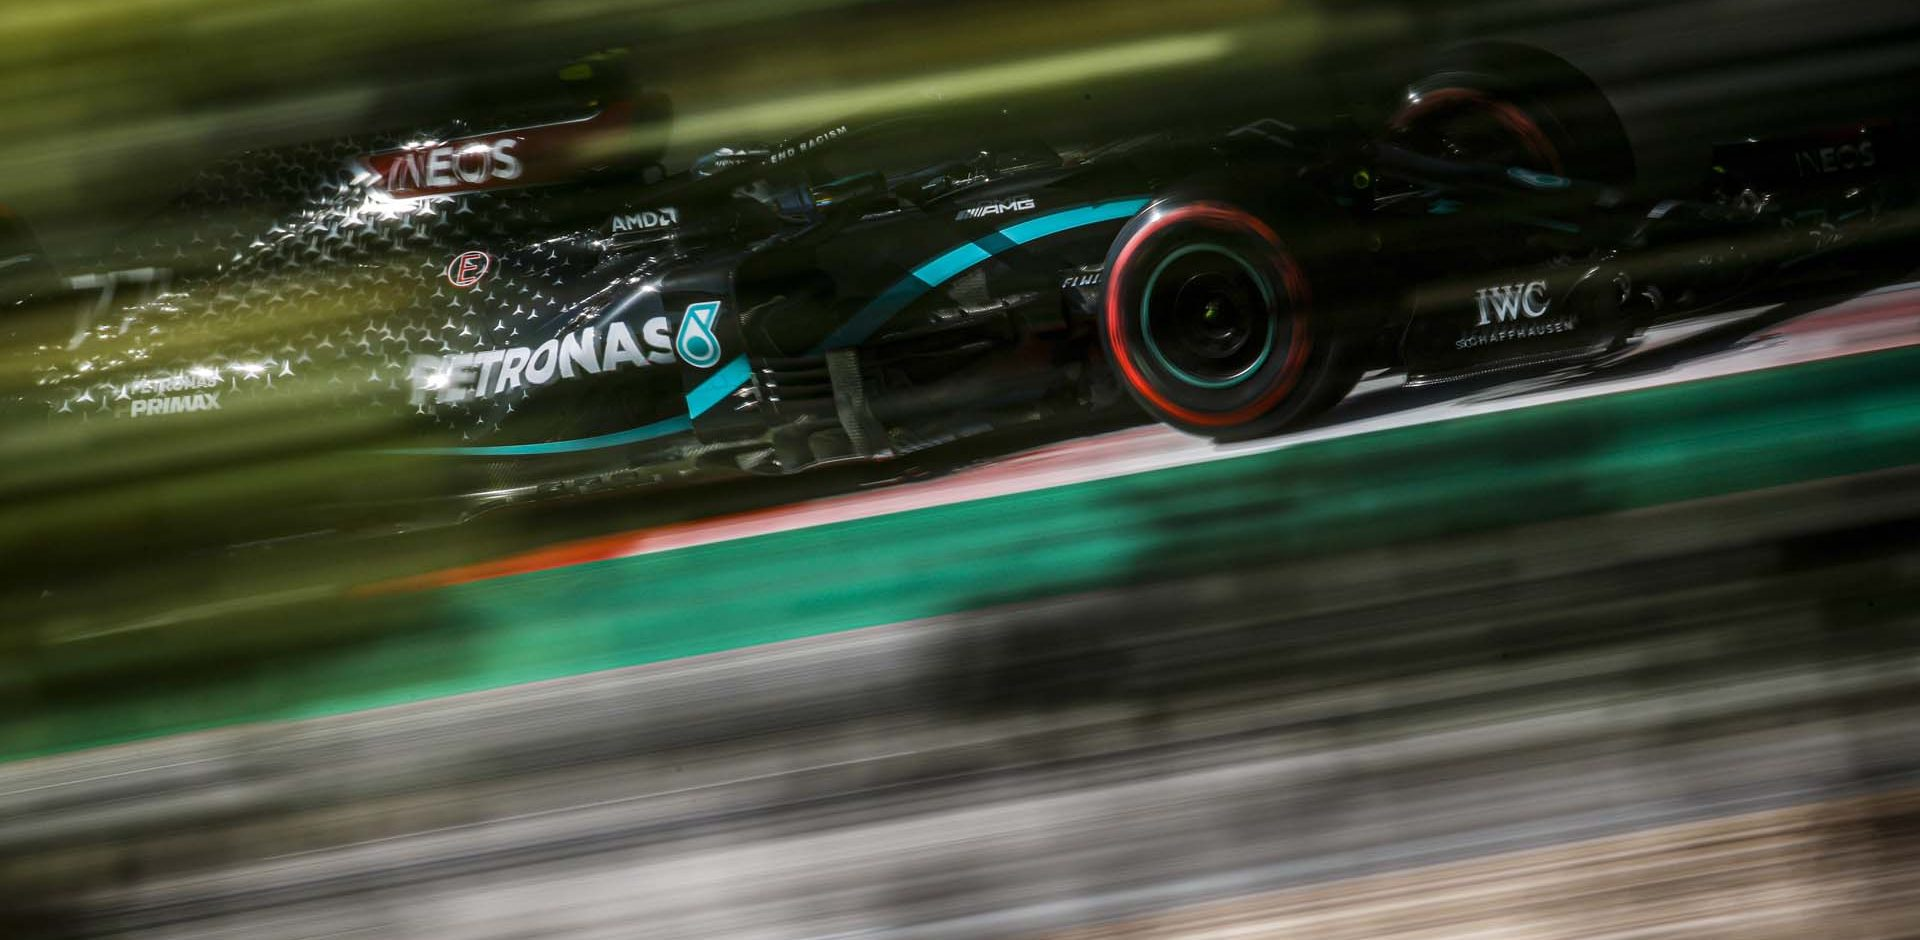 2020 Portuguese Grand Prix, Saturday - LAT Images Lewis Hamilton Mercedes beauty